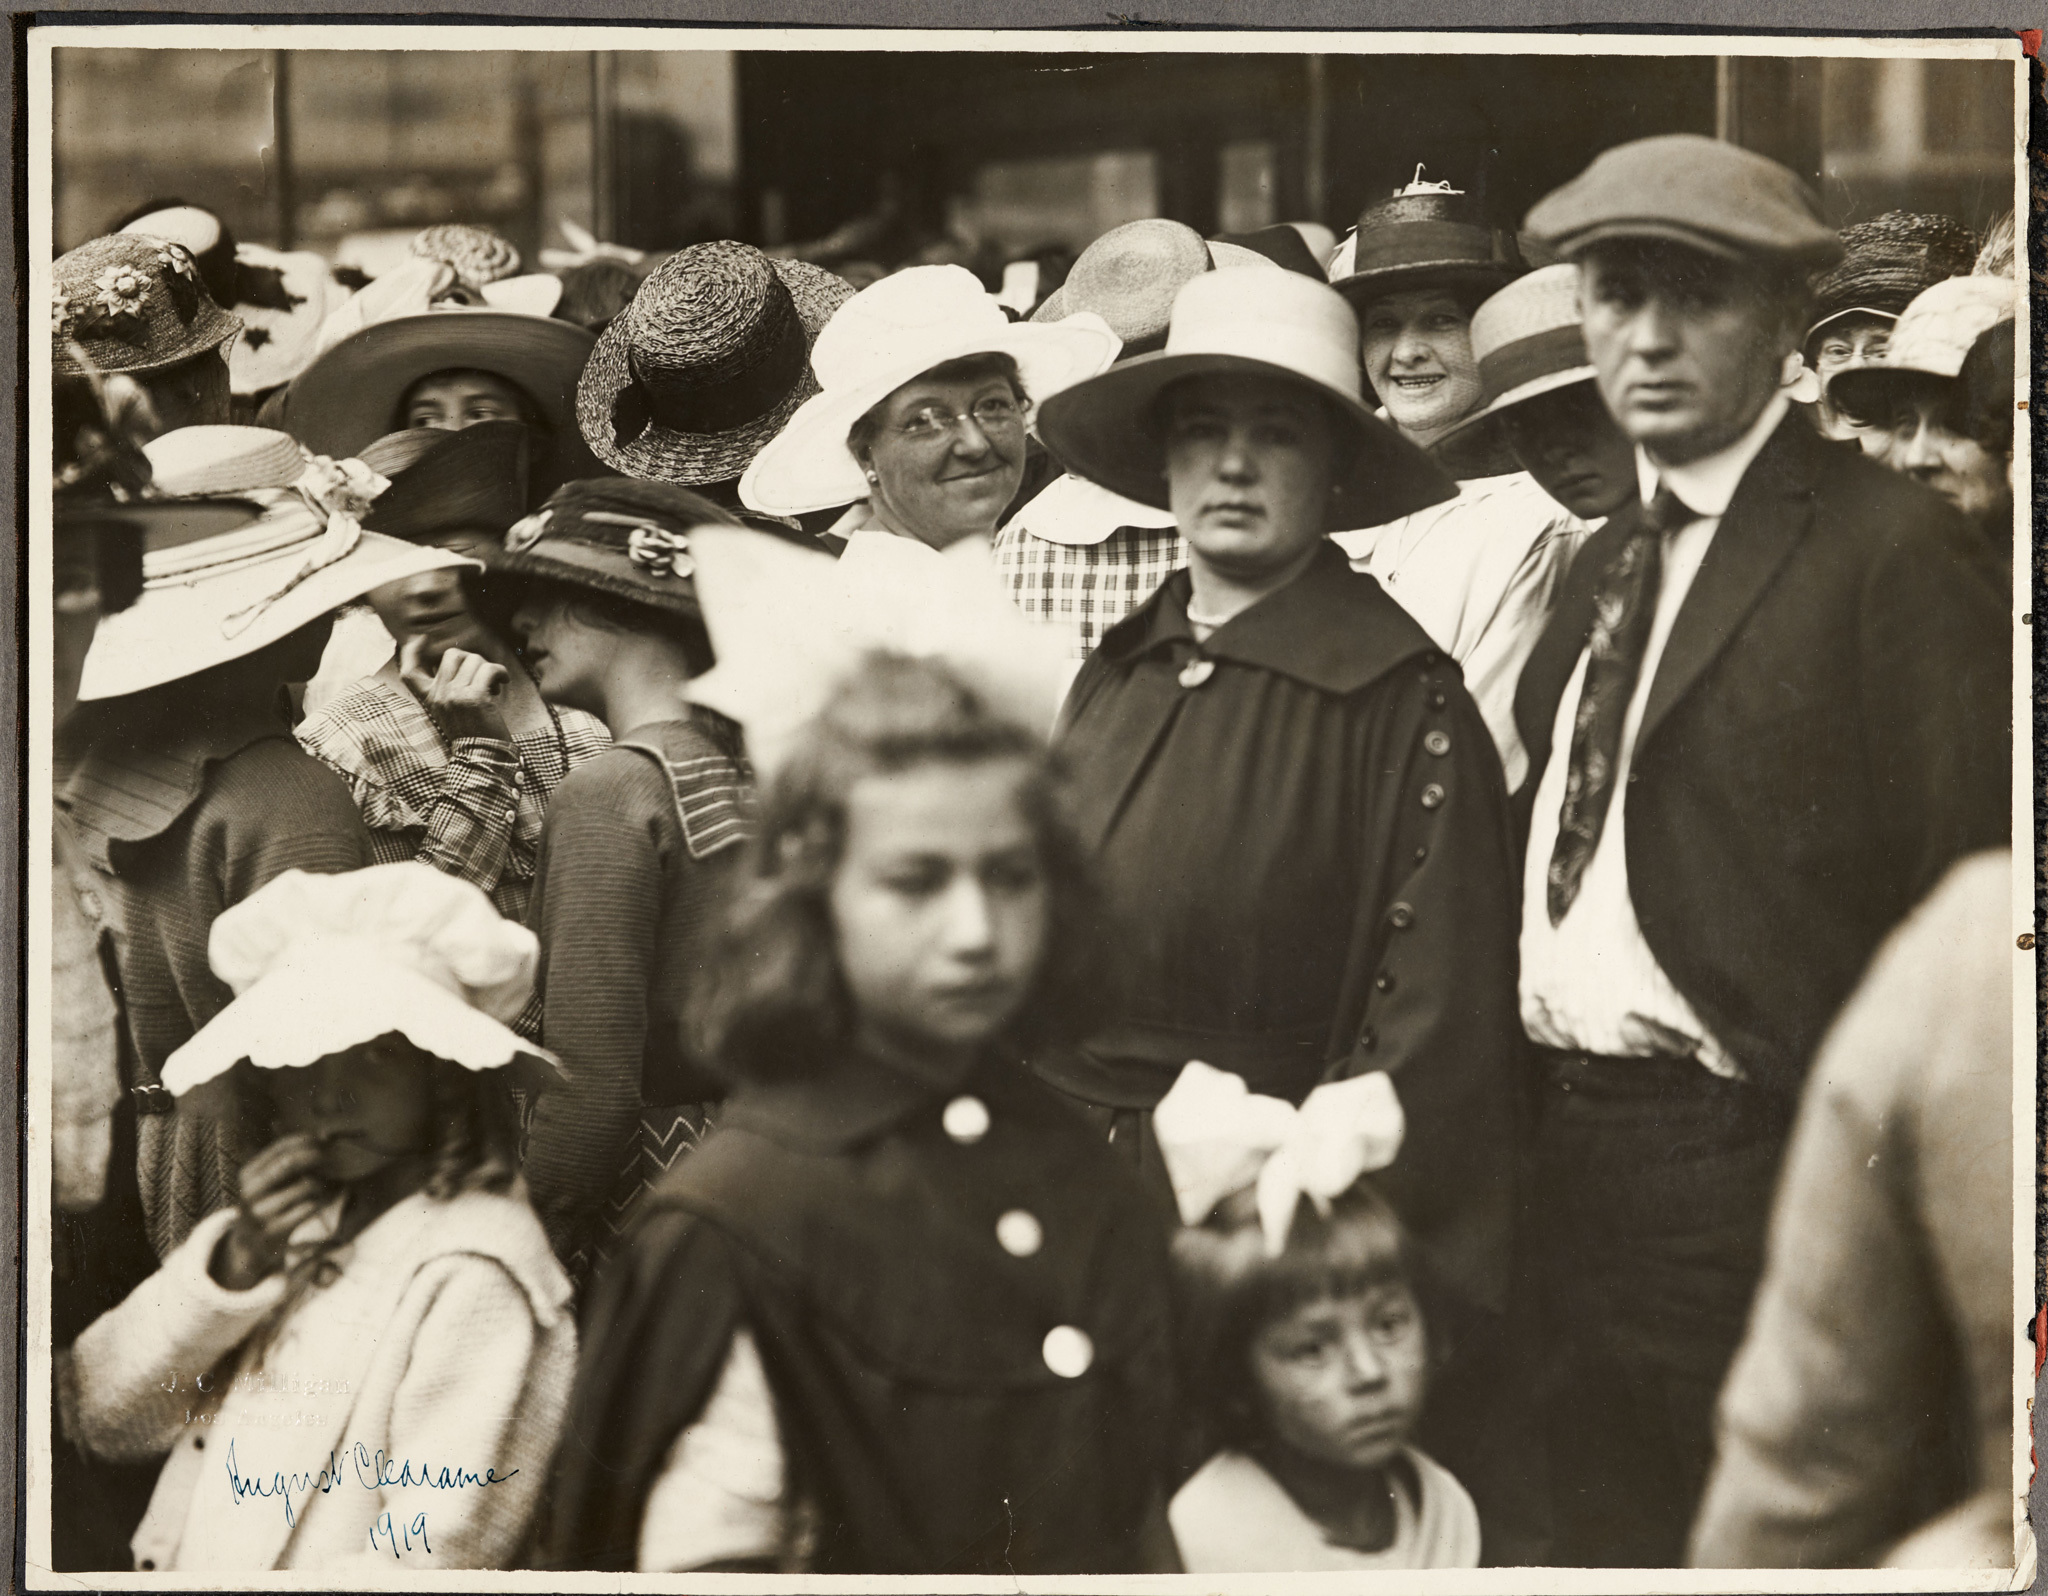 J. C. Milligan, Crowds at Bullock's Department Store, Broadway, Los Angeles, August 1919.